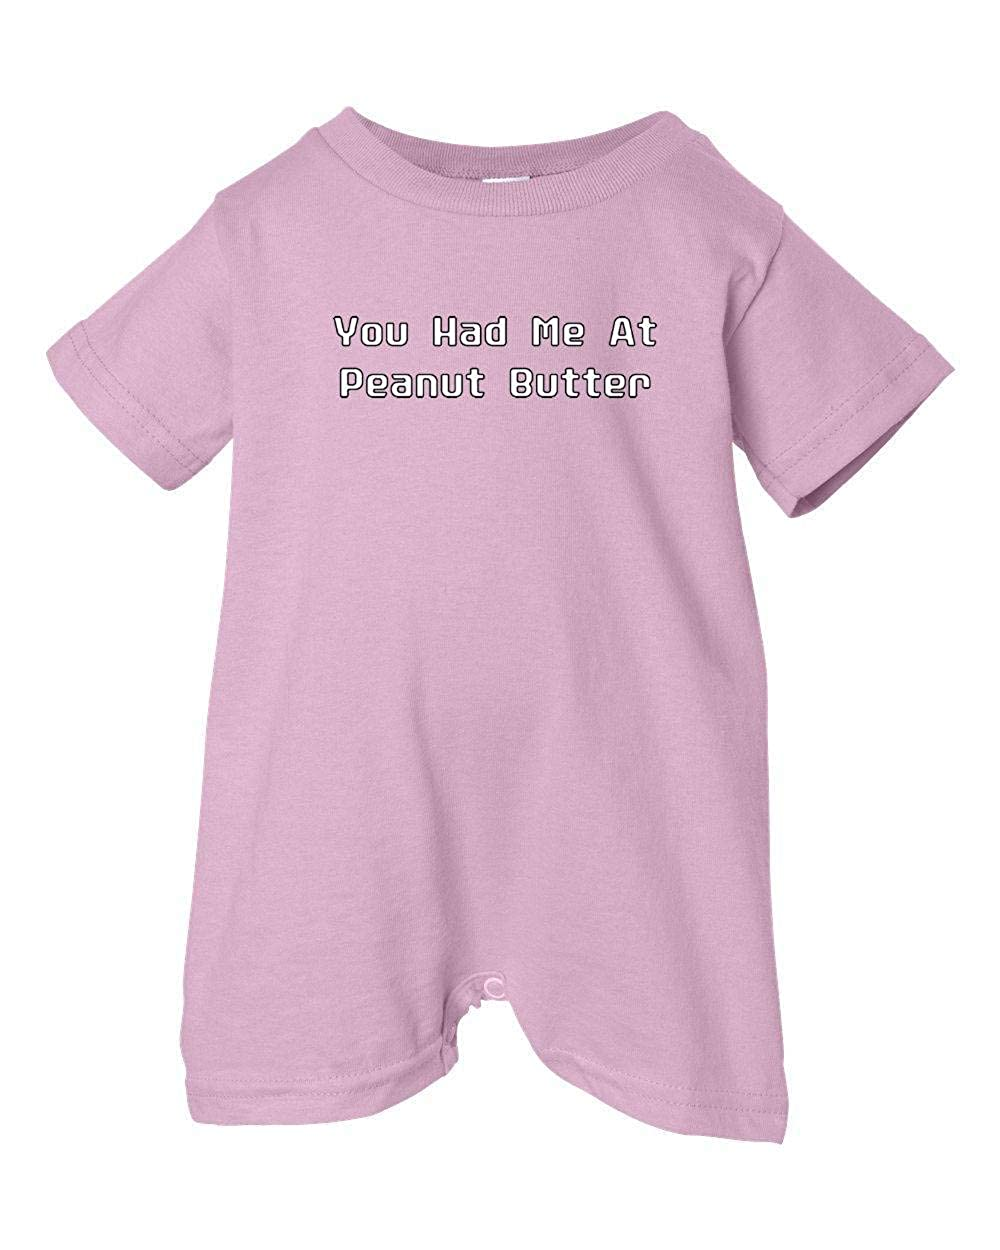 Tasty Threads Unisex Baby You Had Me At Peanut Butter T-Shirt Romper Pink, 18 Months